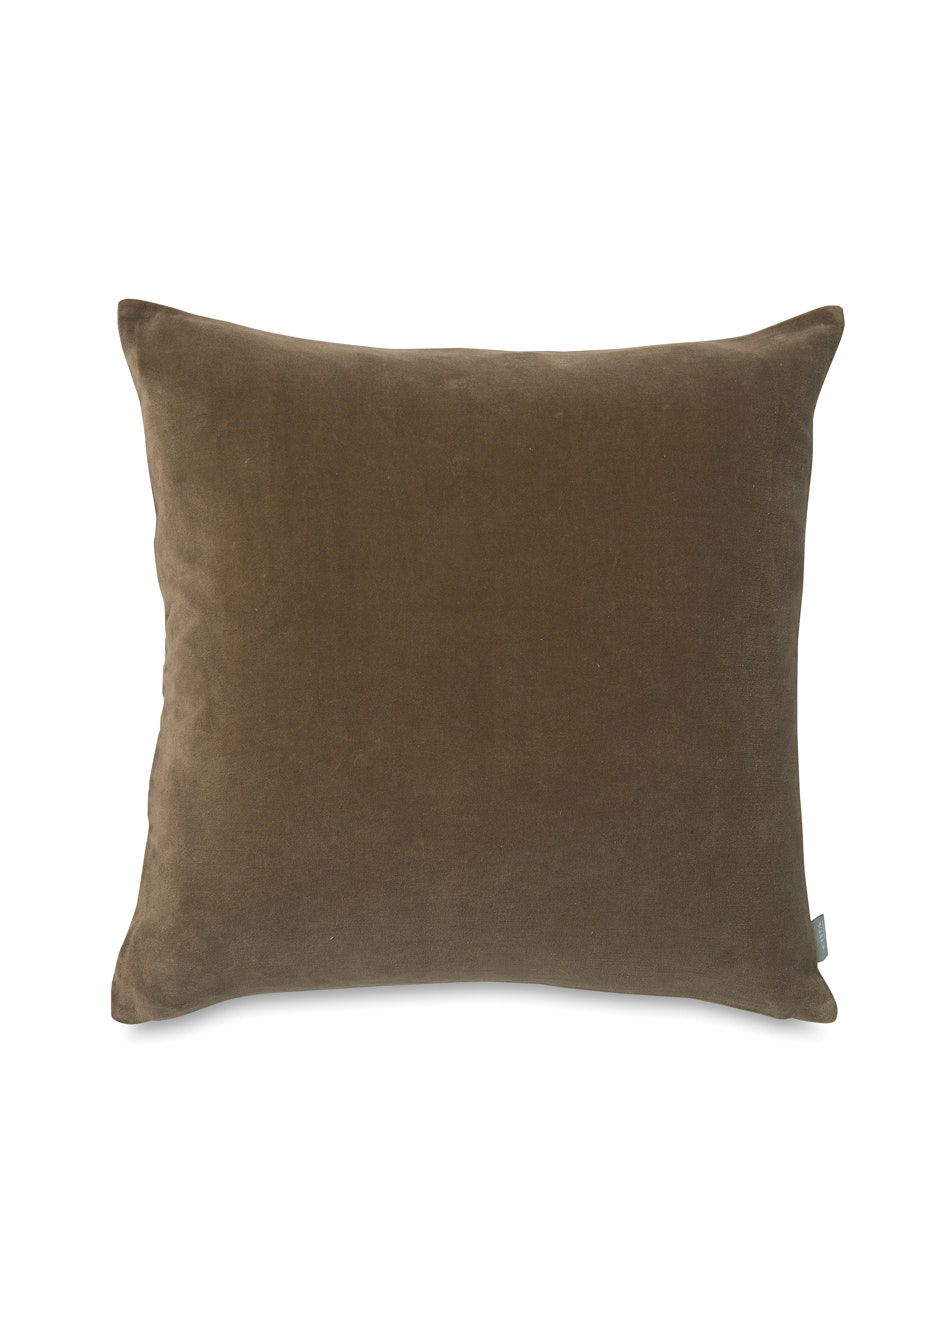 Citta - Cotton Velvet Cushion Cover - Caper